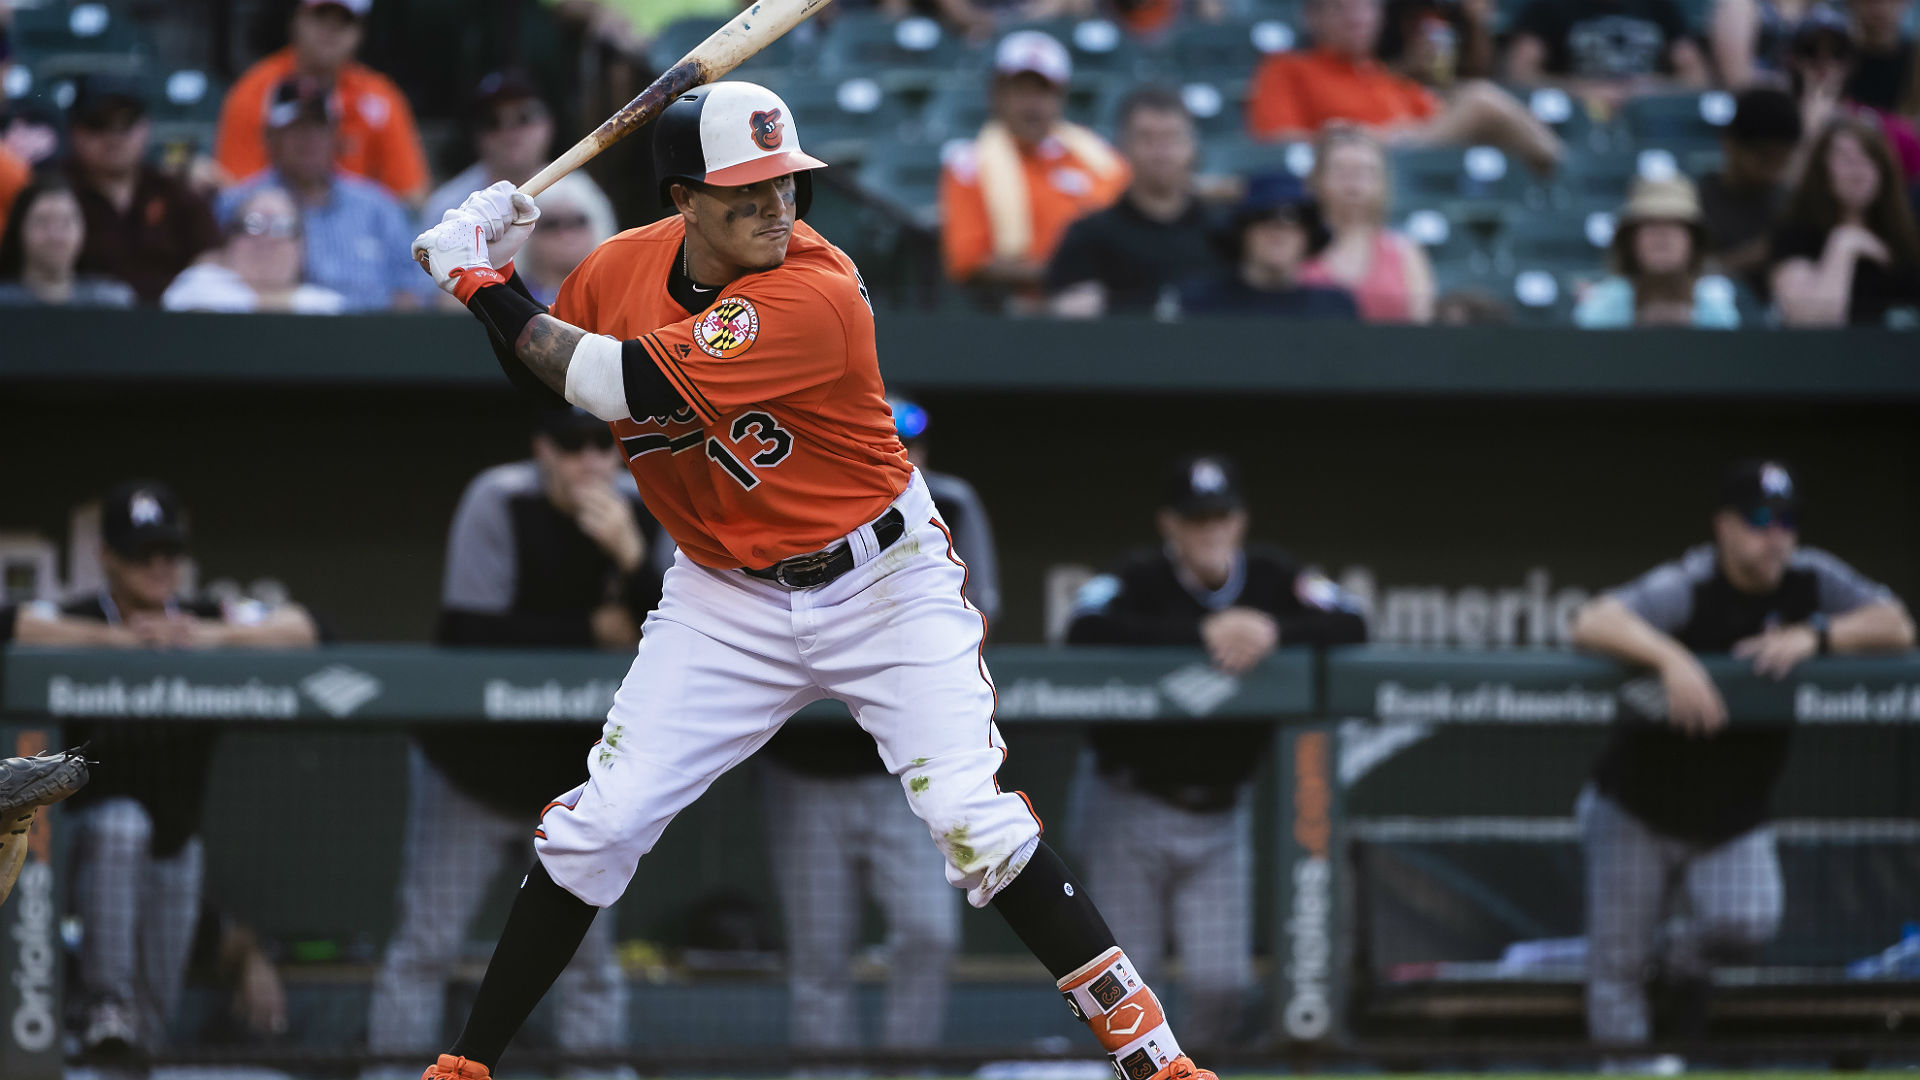 MLB Trade Deadline: Orioles Parting Ways With Machado